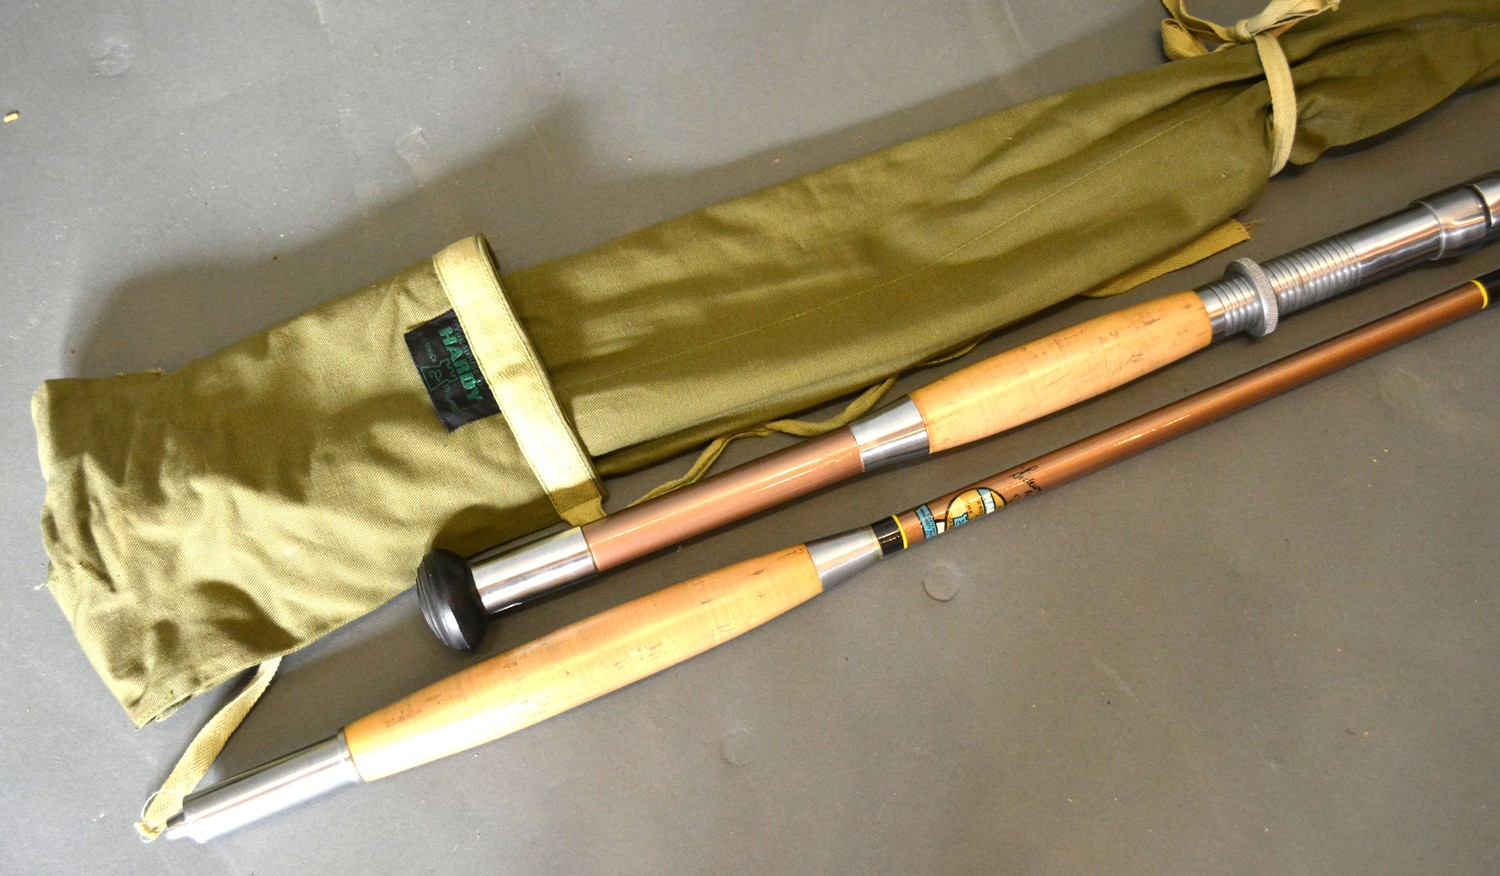 The Sidewinder No.1 fishing rod from The House of Hardy - Image 2 of 2